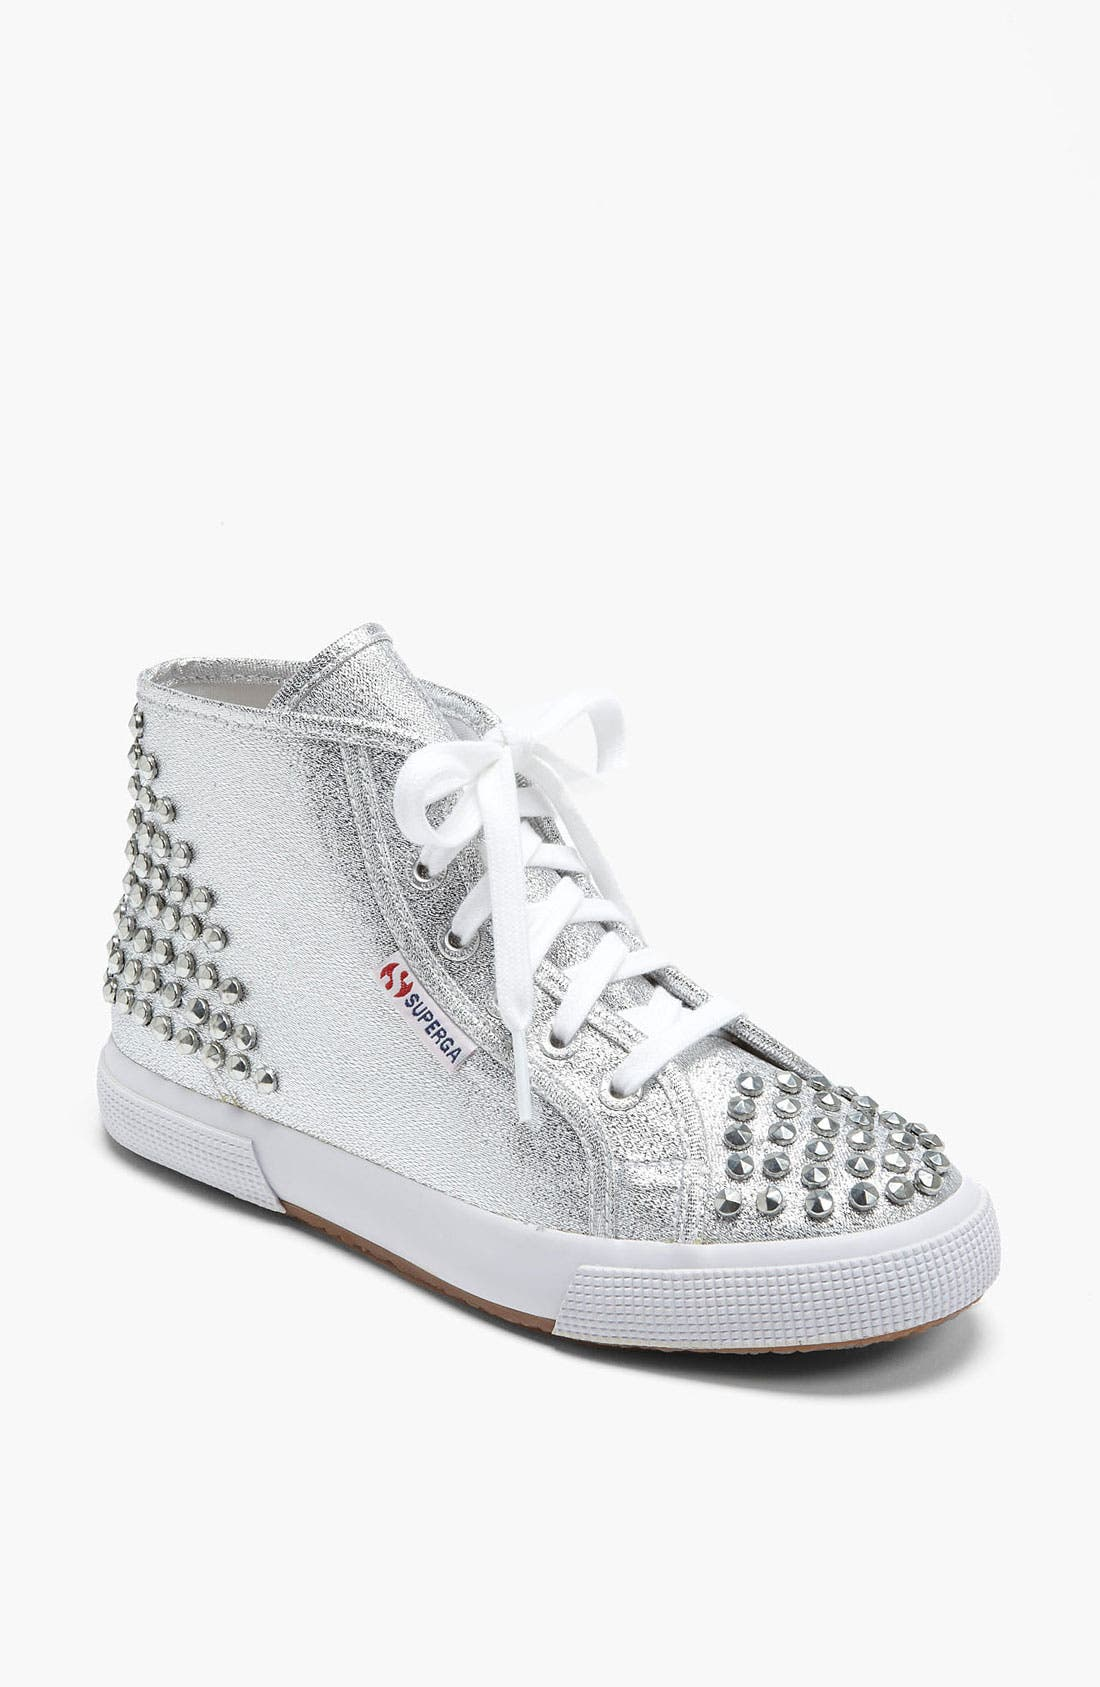 Alternate Image 1 Selected - Superga 'Lamé Studs' Sneaker (Women)